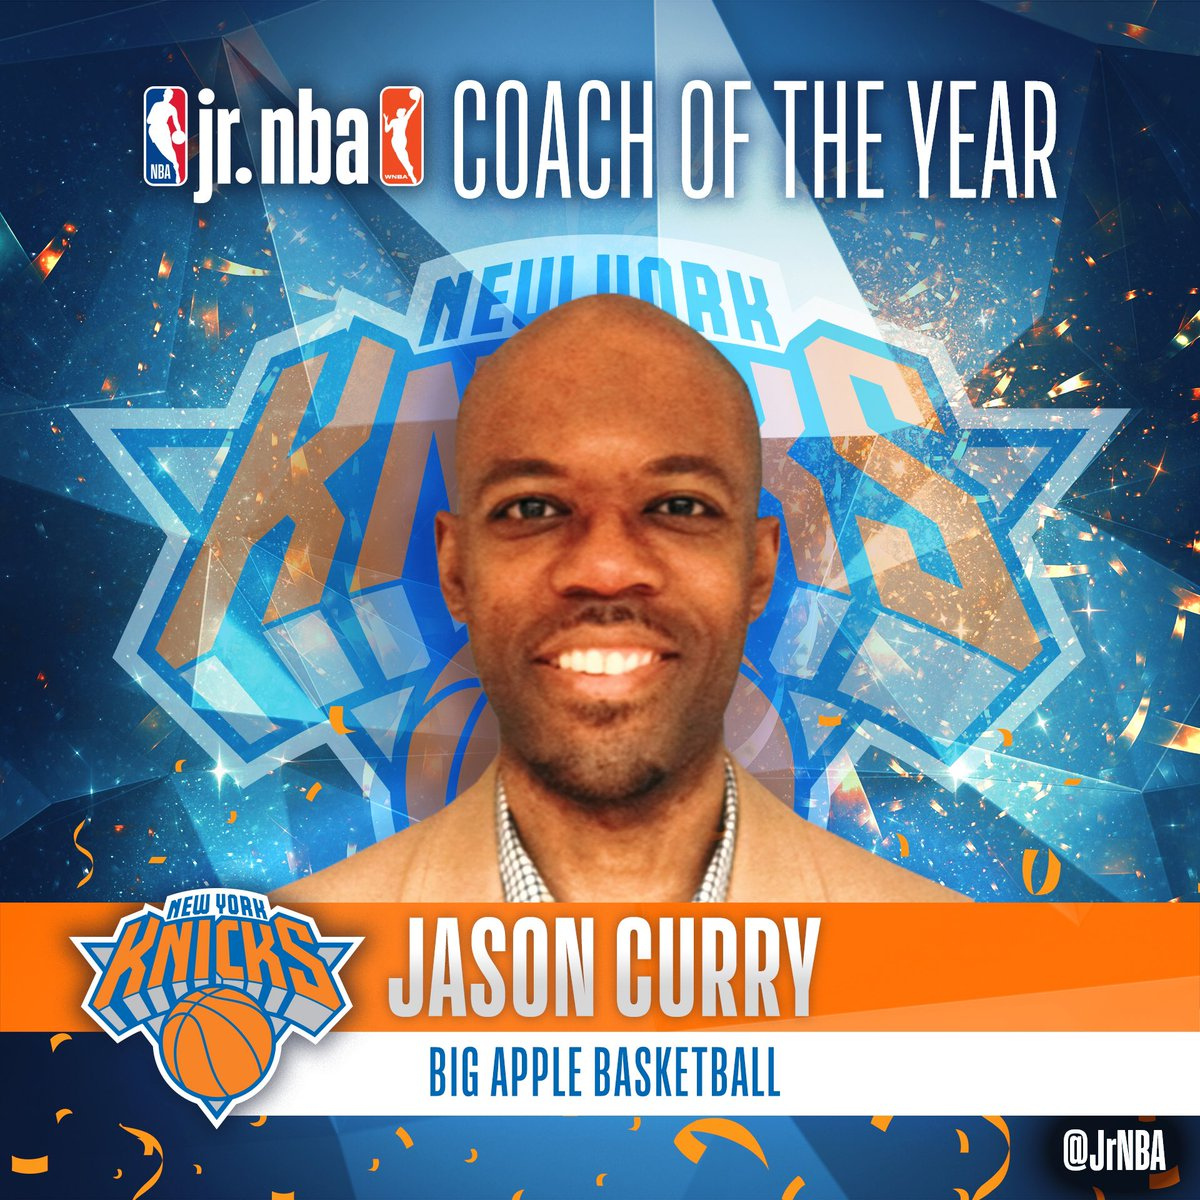 Congratulations to Jason Curry from the New York Knicks for winning the Jr. NBA Coach of the Award! #JrNBACOY https://t.co/o5cwpmIUbb